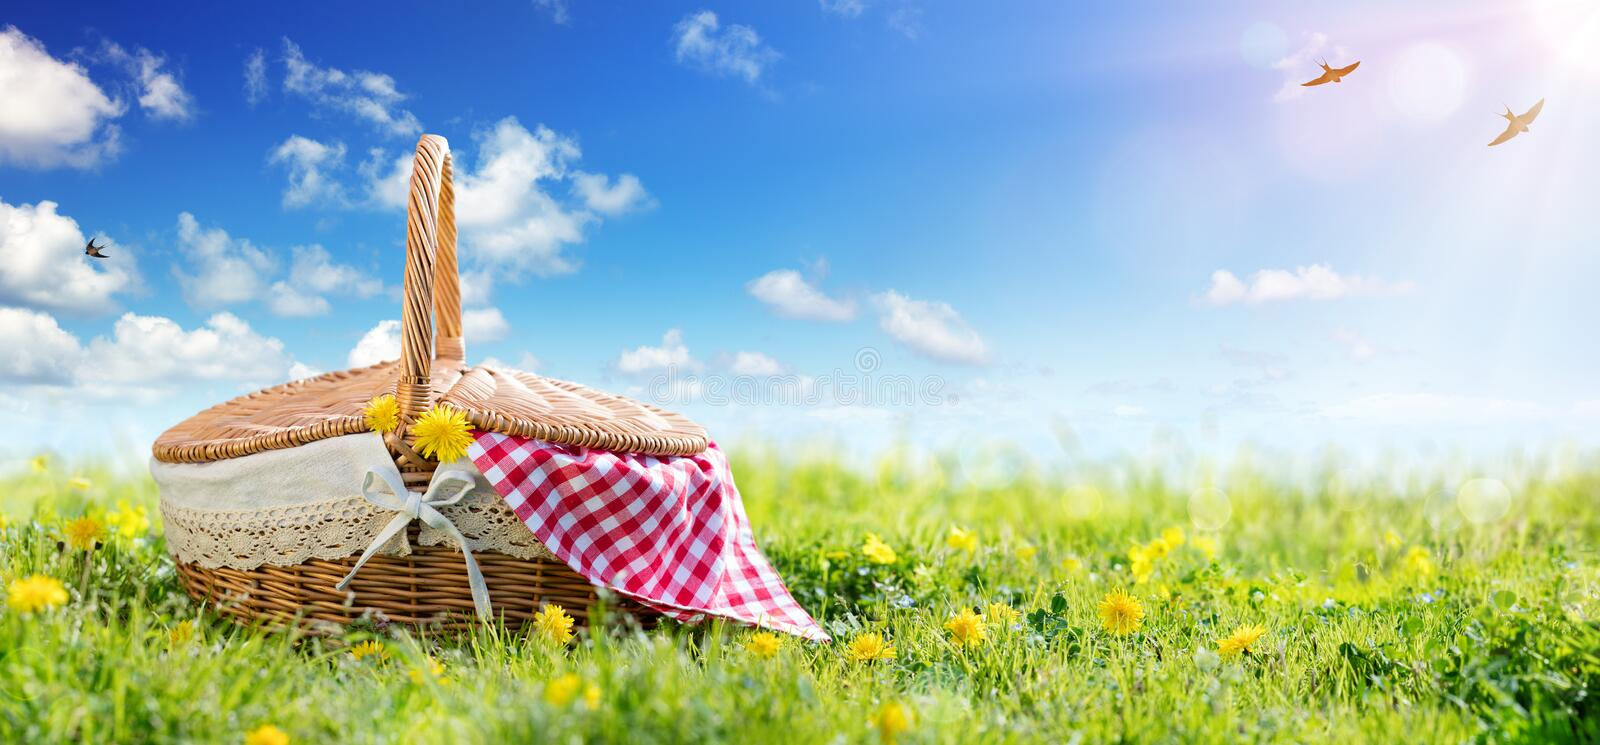 Picnic - Basket On Meadow stock photo